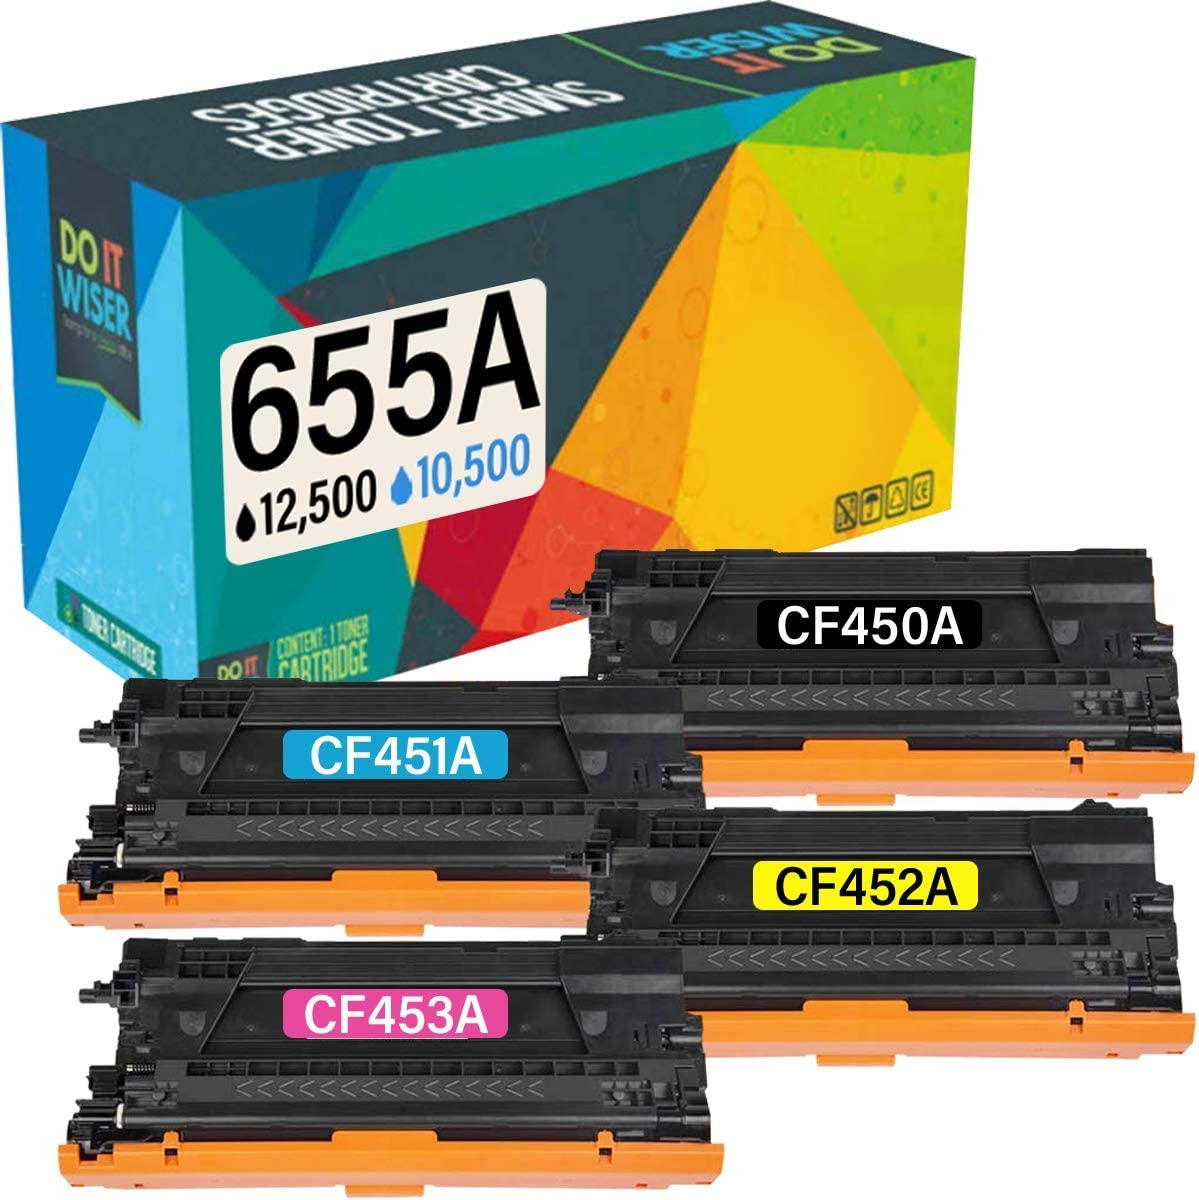 Do it Wiser Compatible Toner Cartridge Replacement for HP CF450A 655A Color Laserjet M652n M652dn M653dn M653x M653dh MFP M681dh M682z M681f M681z (4-Pack)